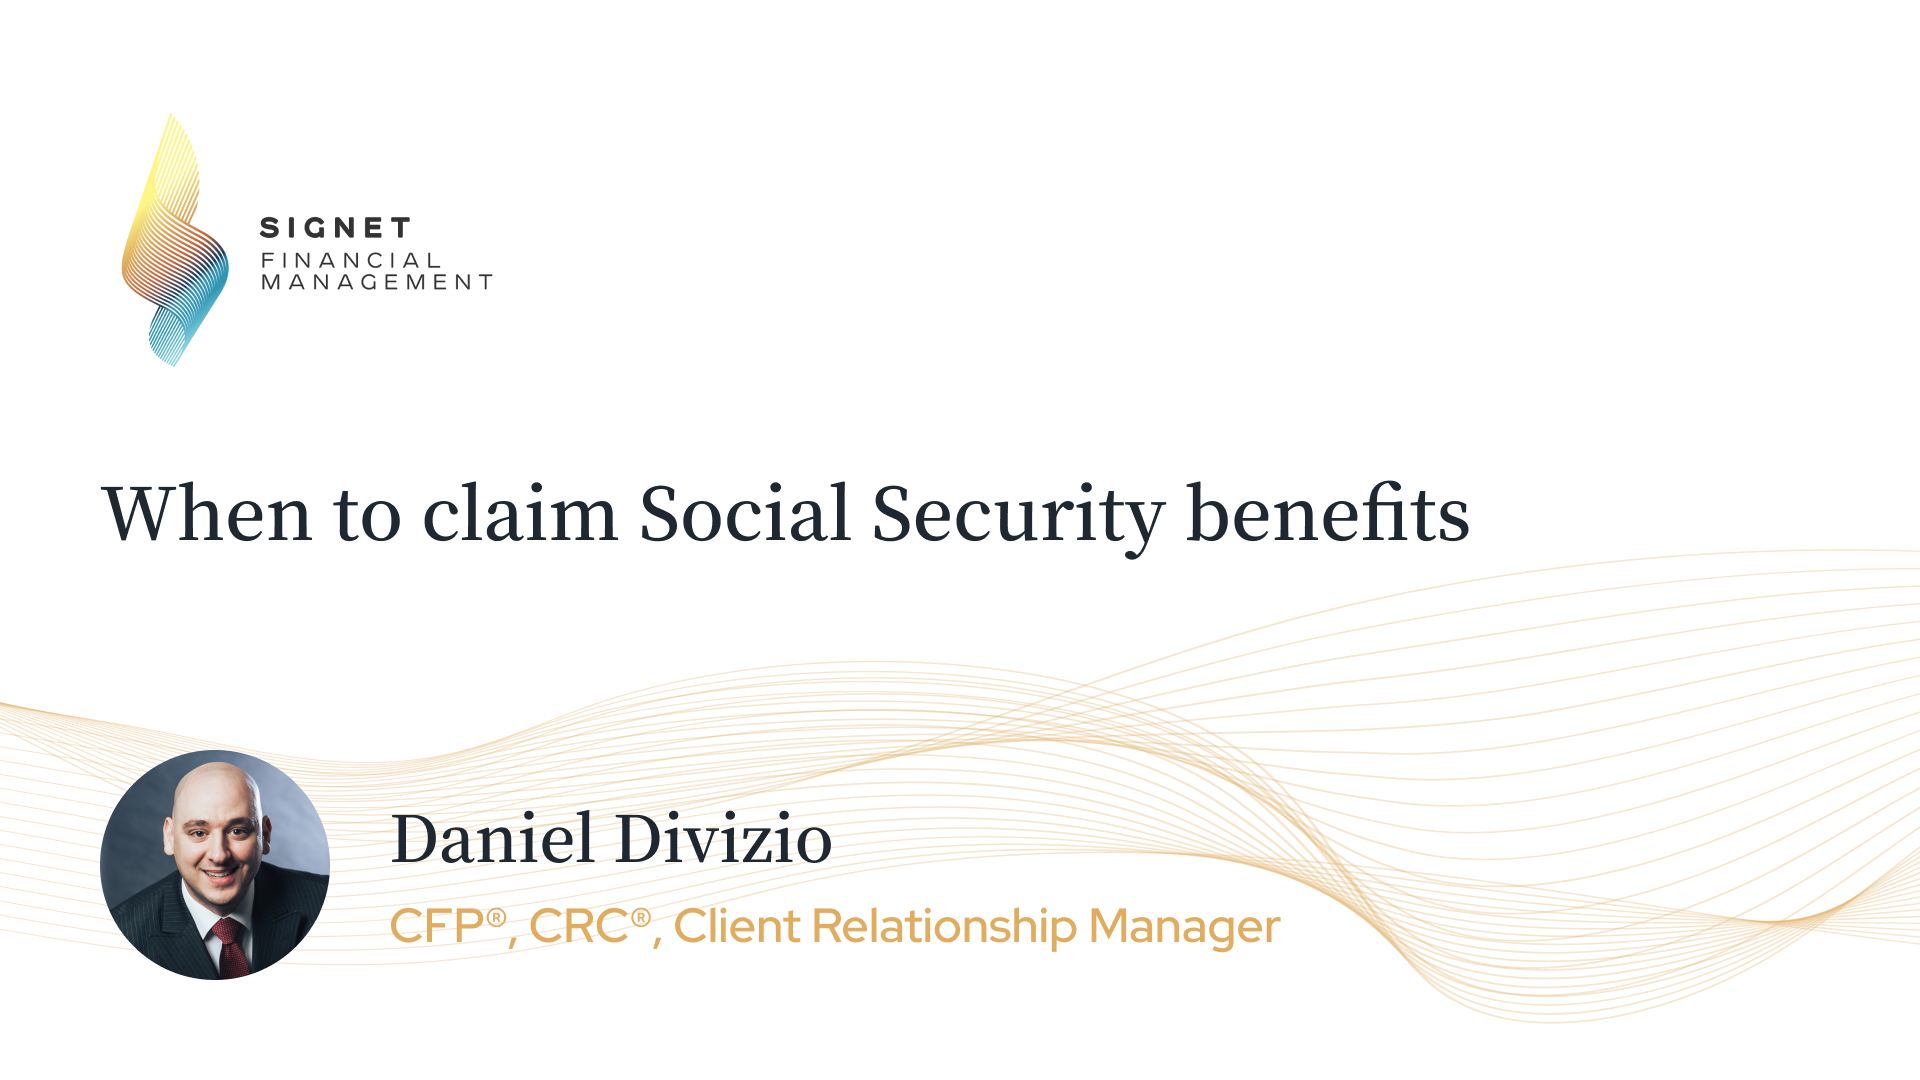 Thumbnail image for social security benefits video